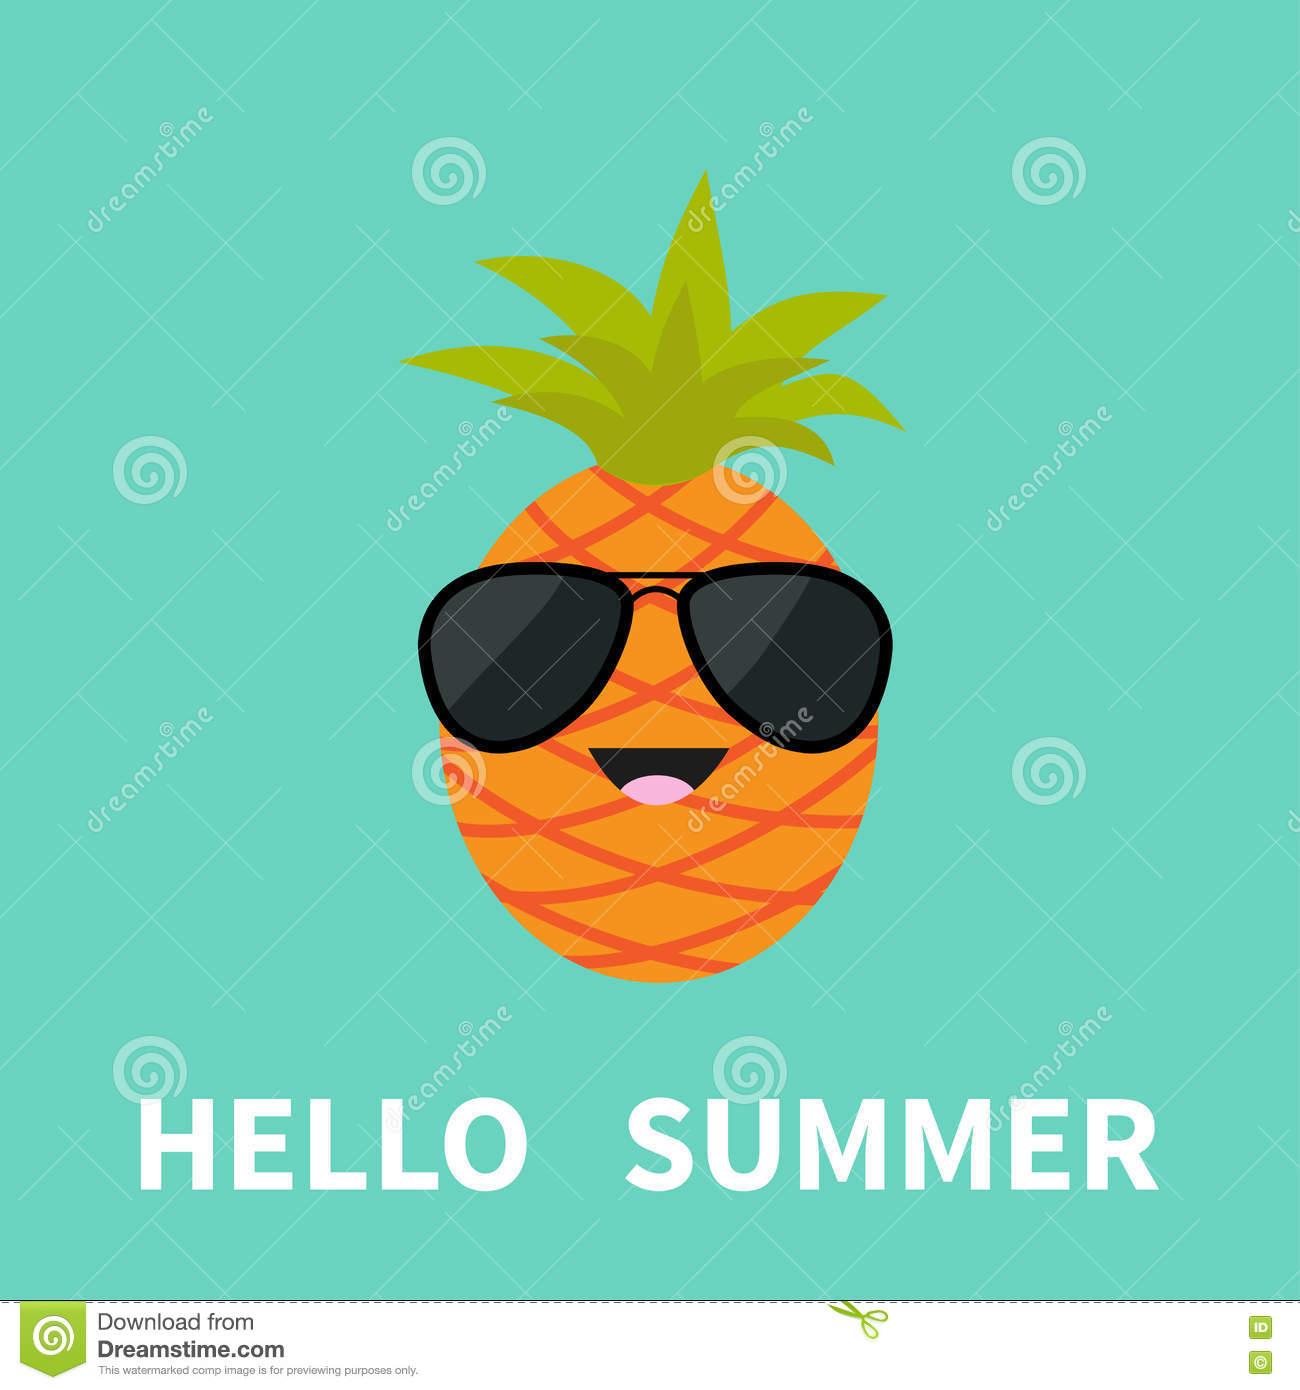 Big Pineapple Fruit With Leaf Wearing Sunglasses Cute Cartoon Smiling Character Hello Summer